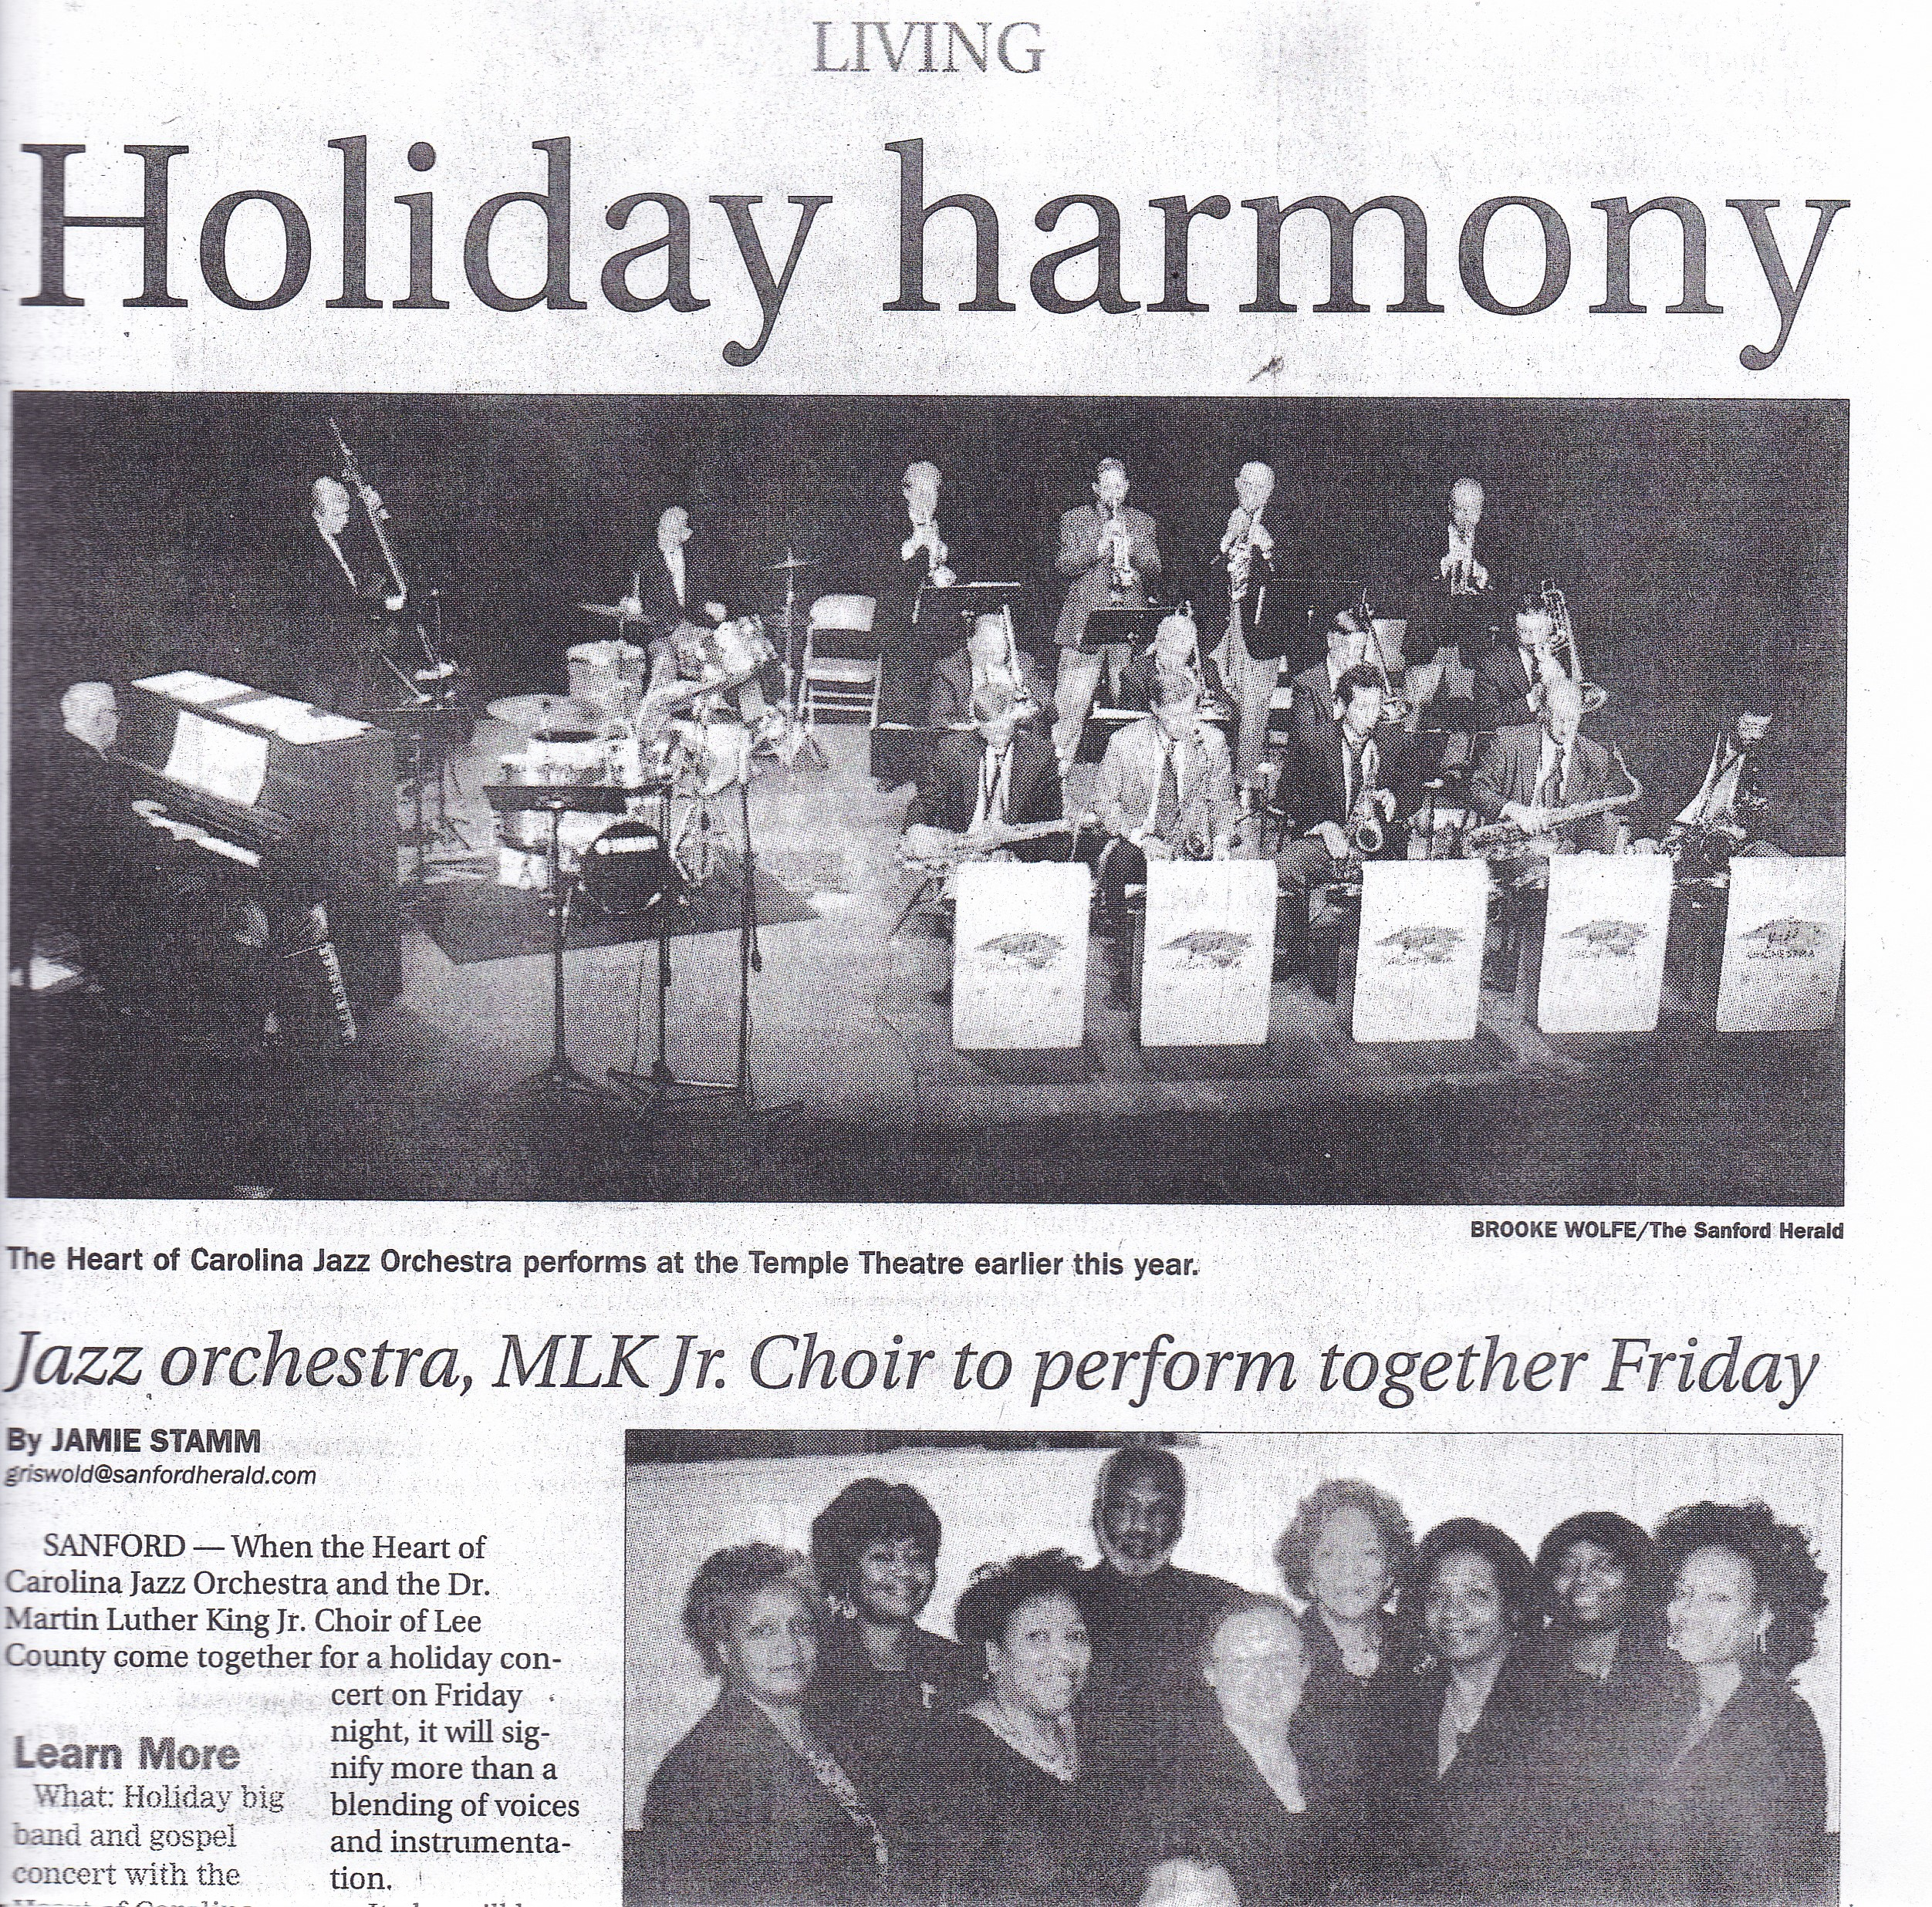 HOCJO-Big-Band-Gospel-in-Herald-Article-1